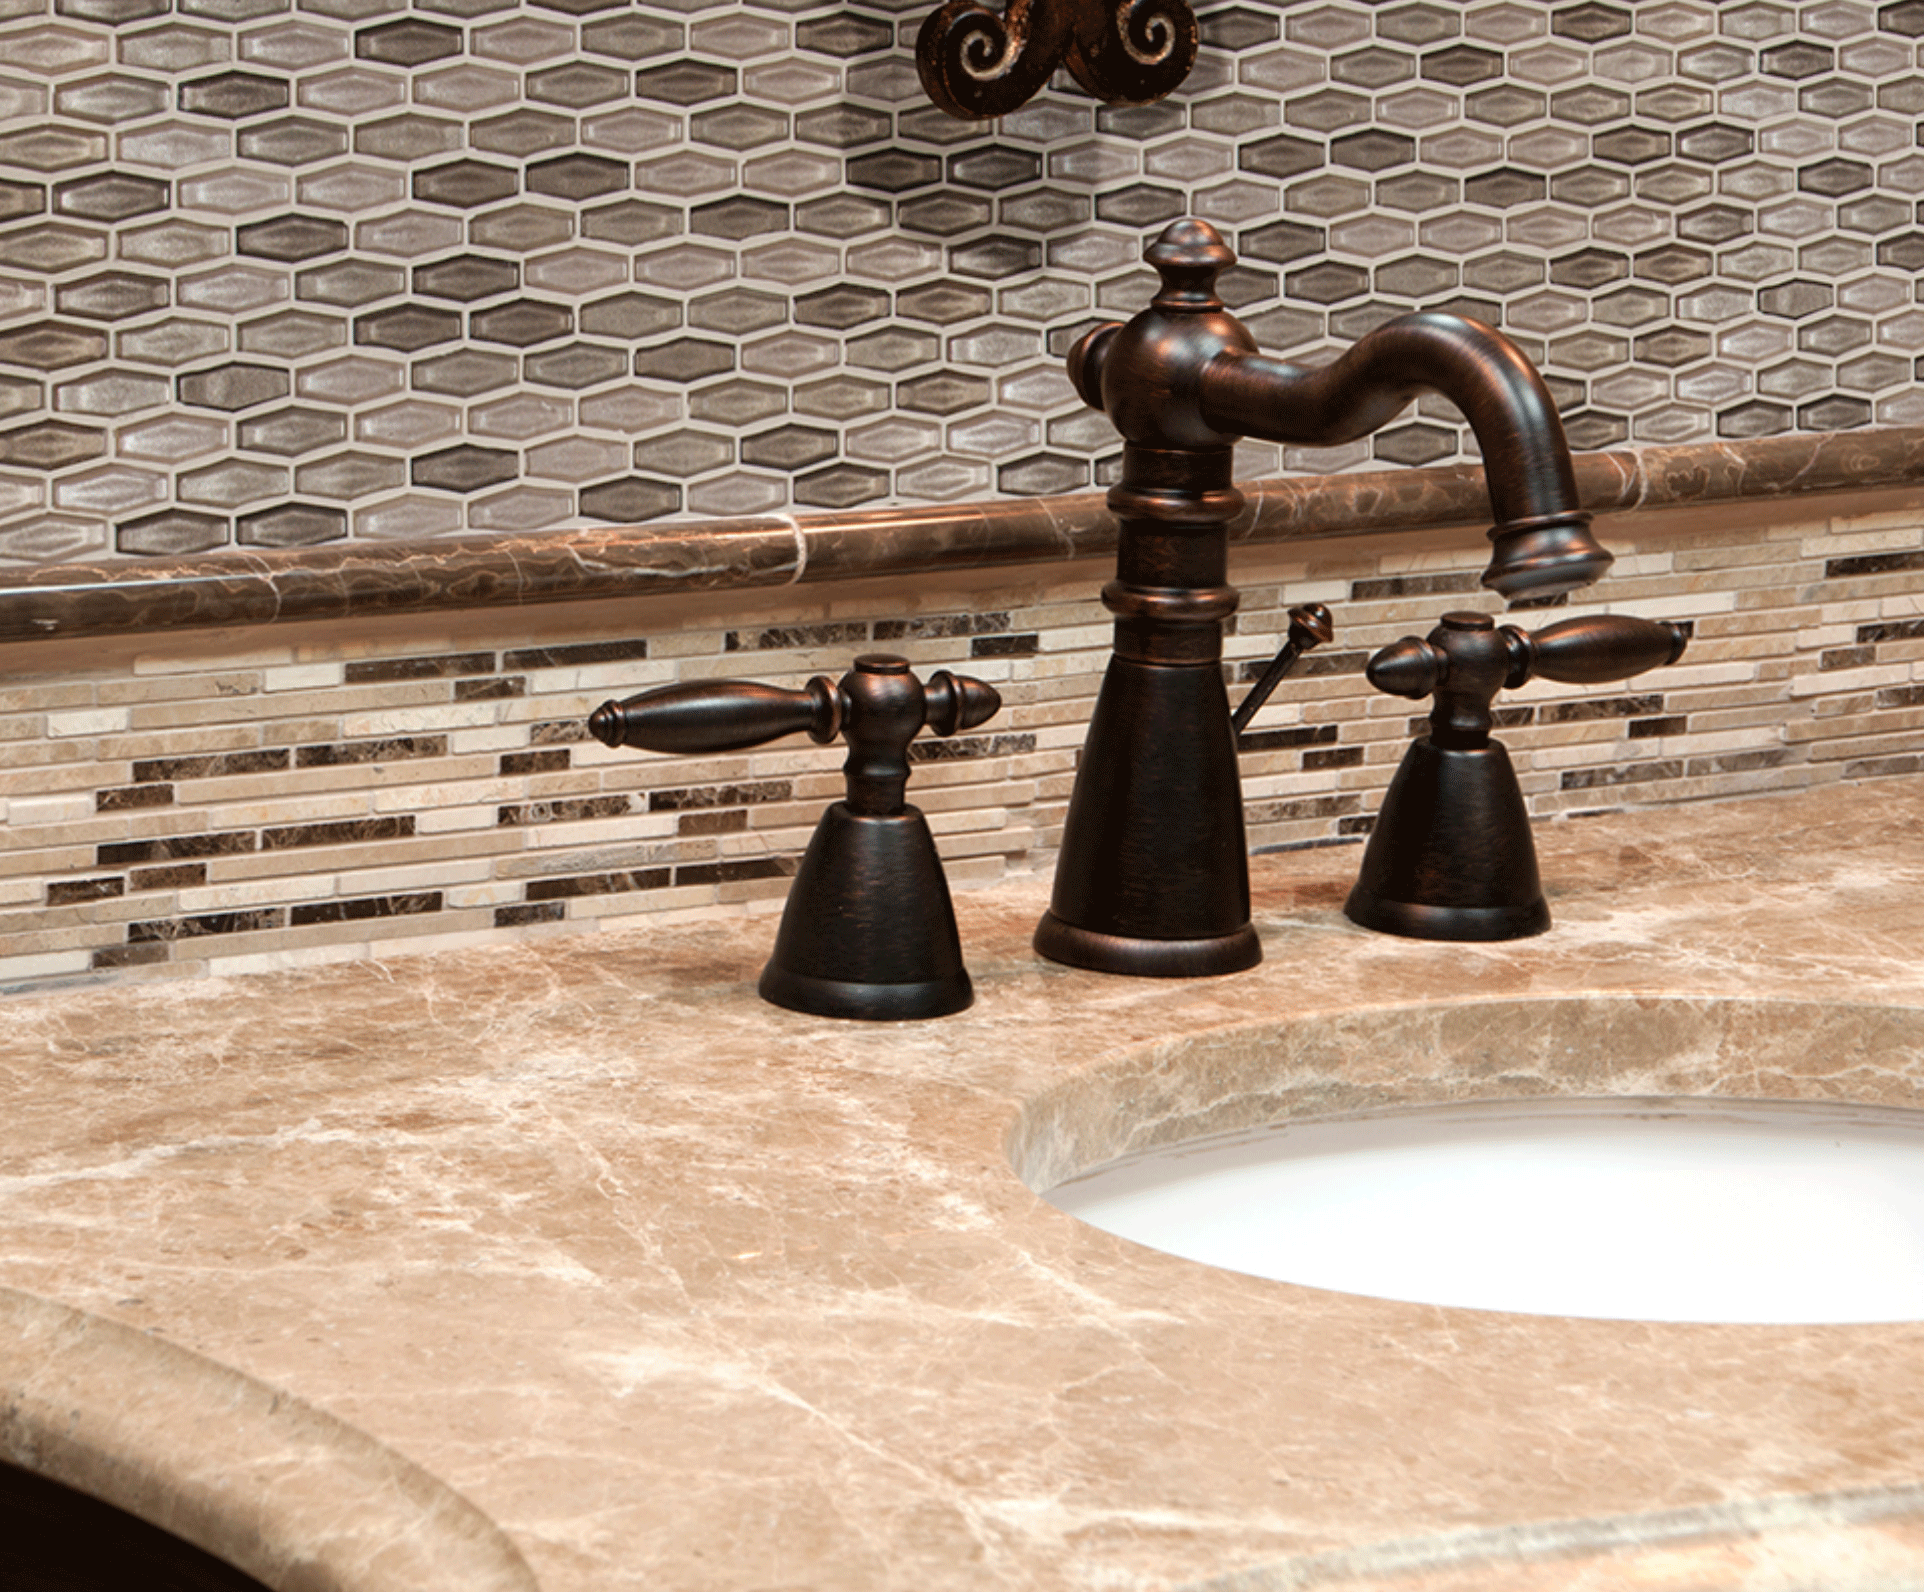 Decorative bathroom backsplash